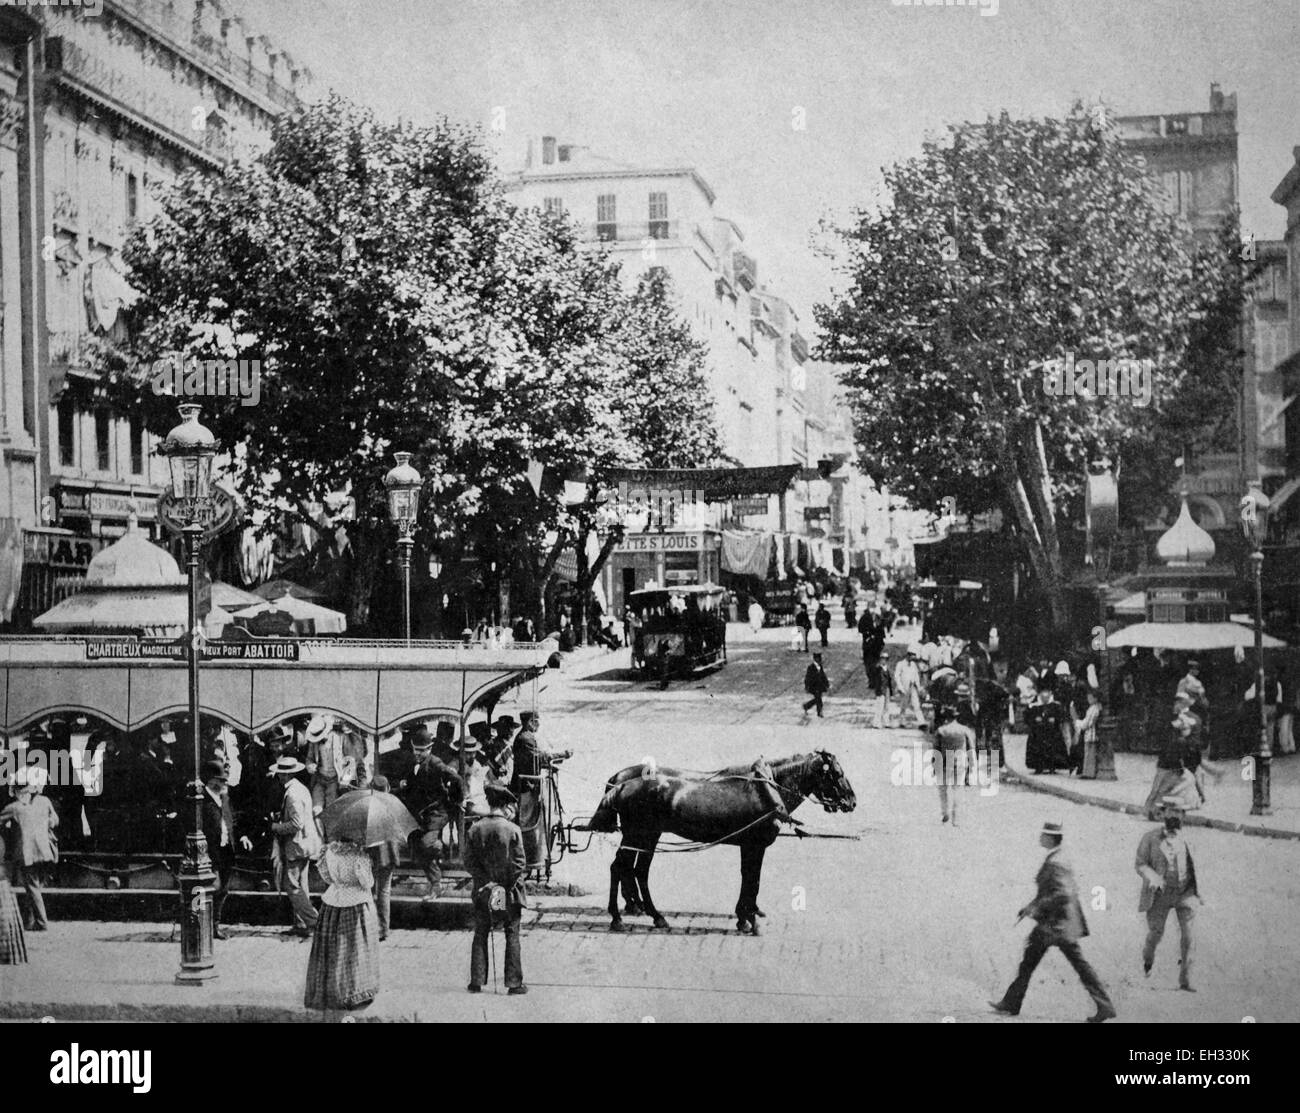 One of the first autotypes of the Cours Saint-Louis, Marseille, historical photograph, 1884 - Stock Image